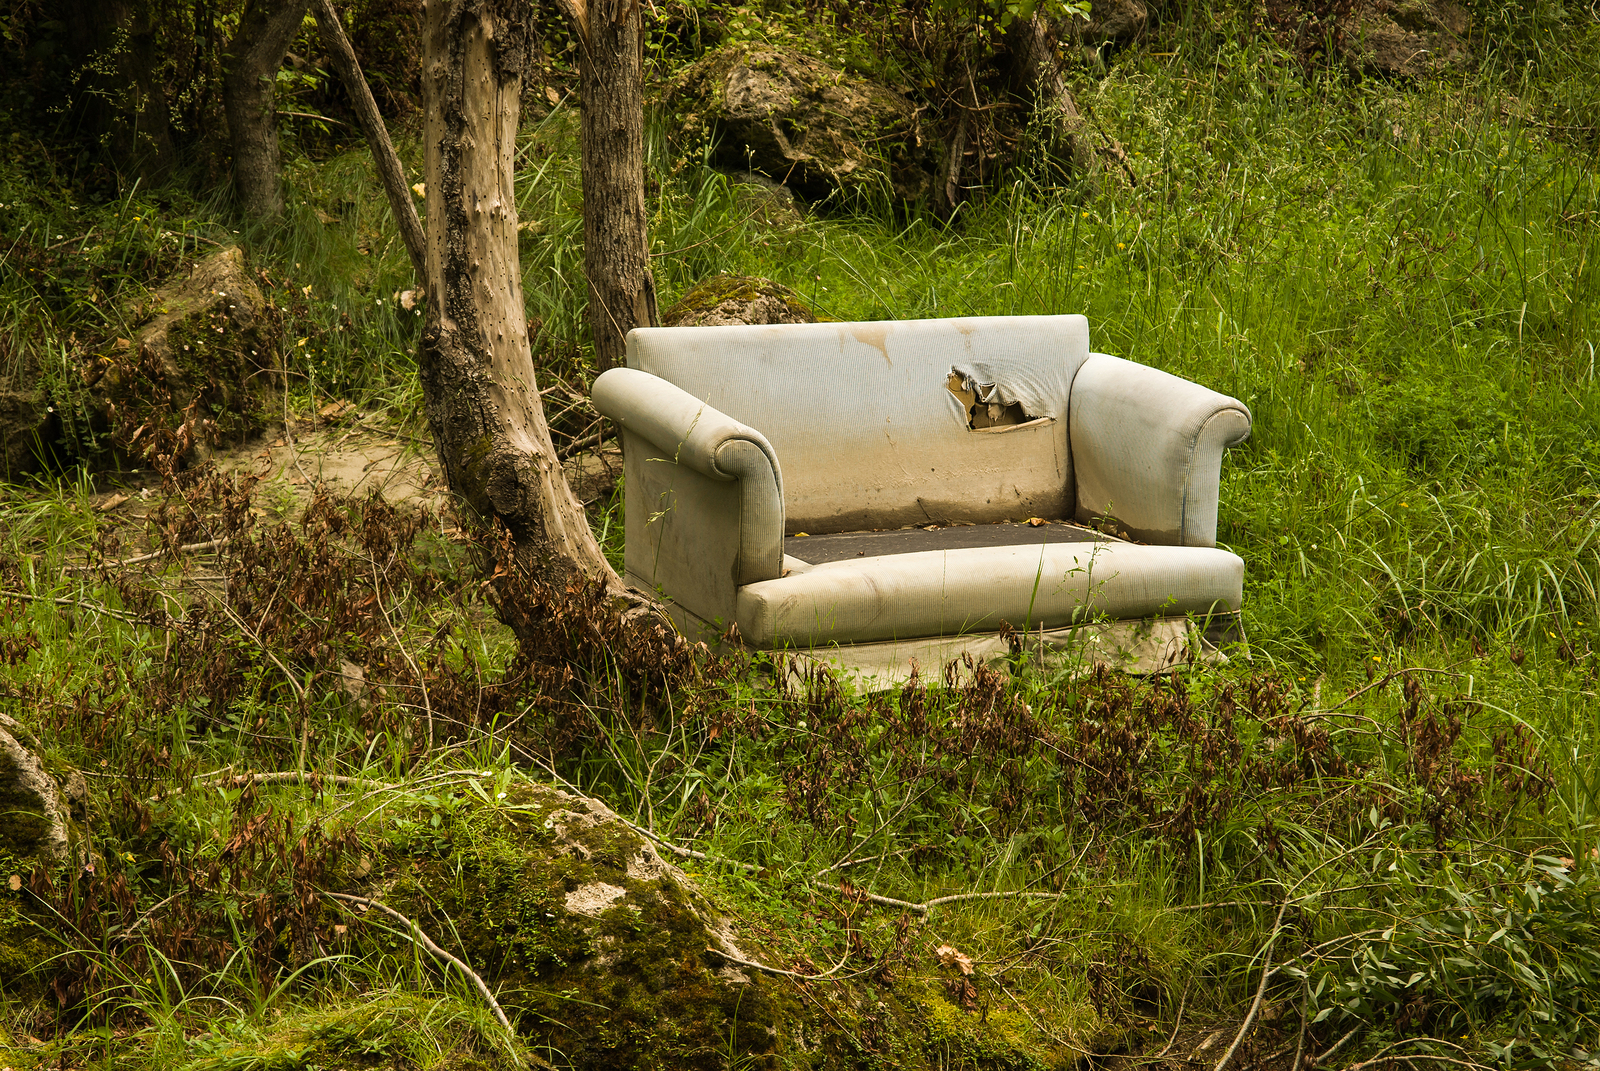 An illegally dumped sofa in the woods